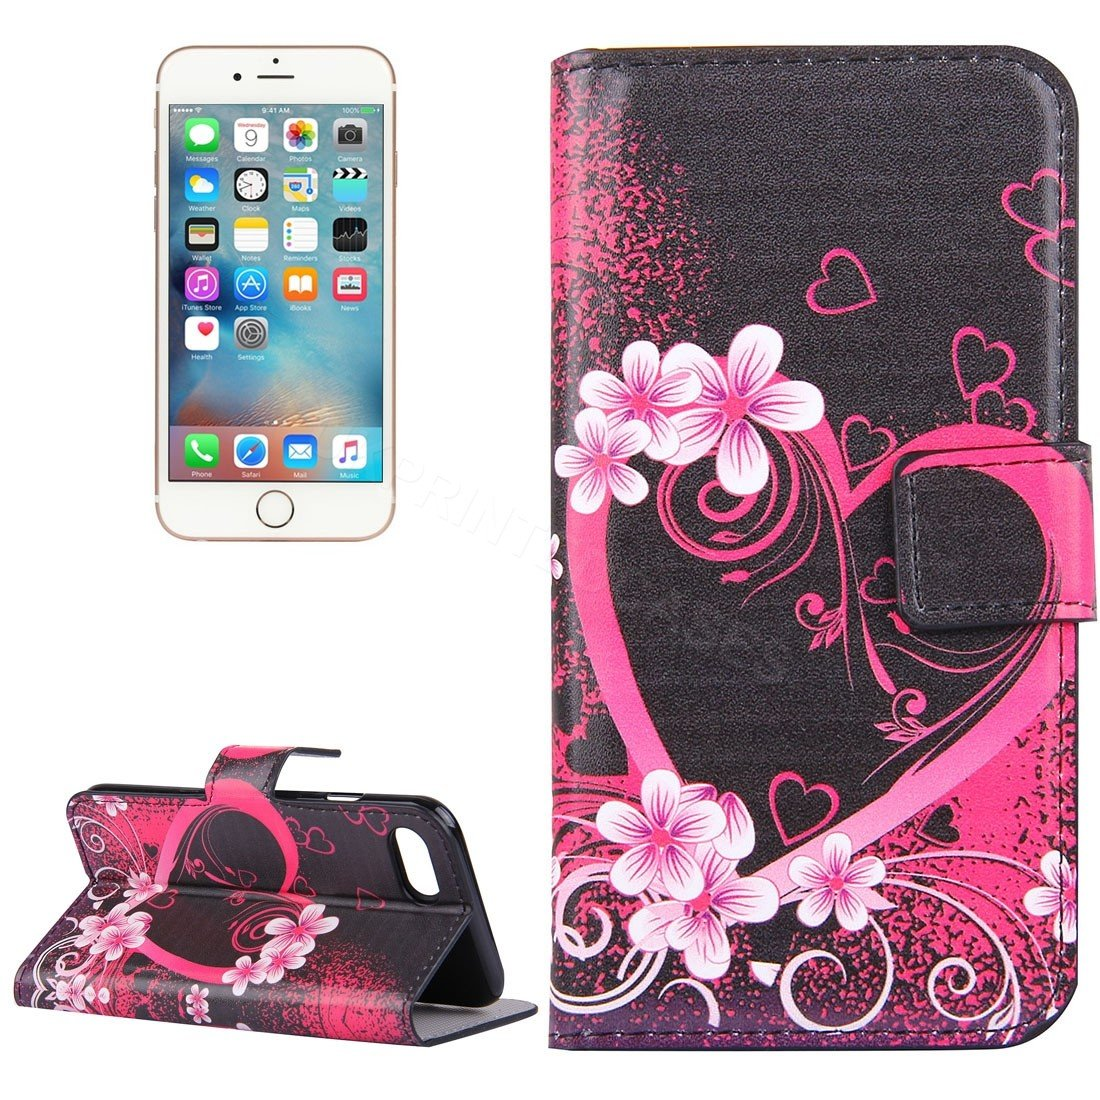 Pink Hearts Flower Flip Mobile Phone Wallet Case For iPhone